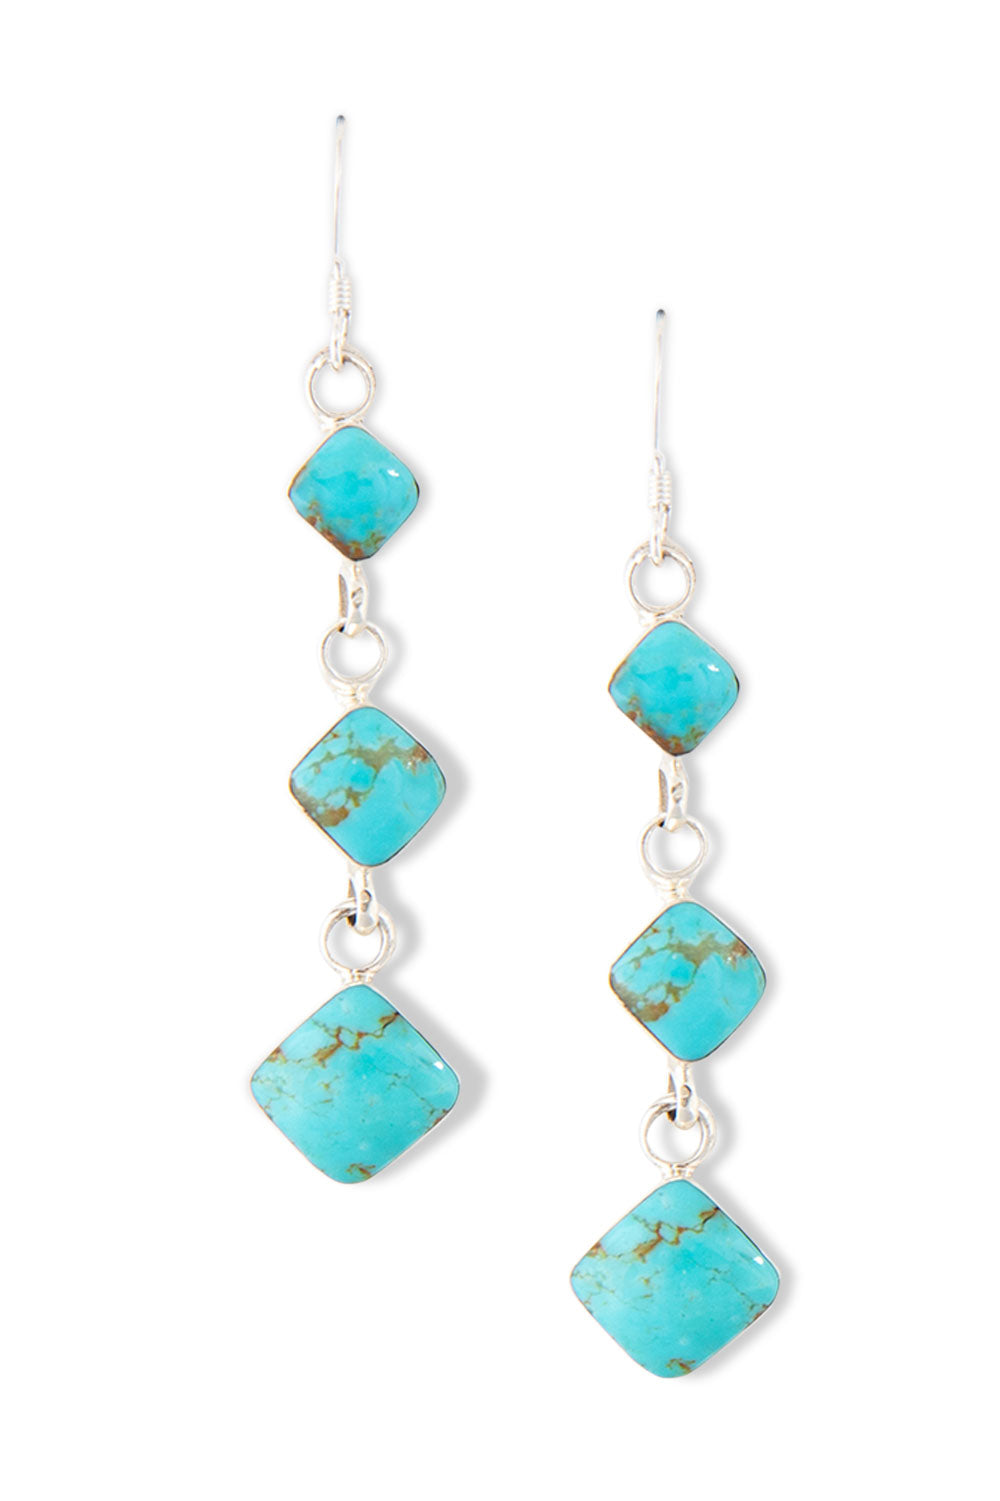 Earrings, Chandelier, Turquoise, 402